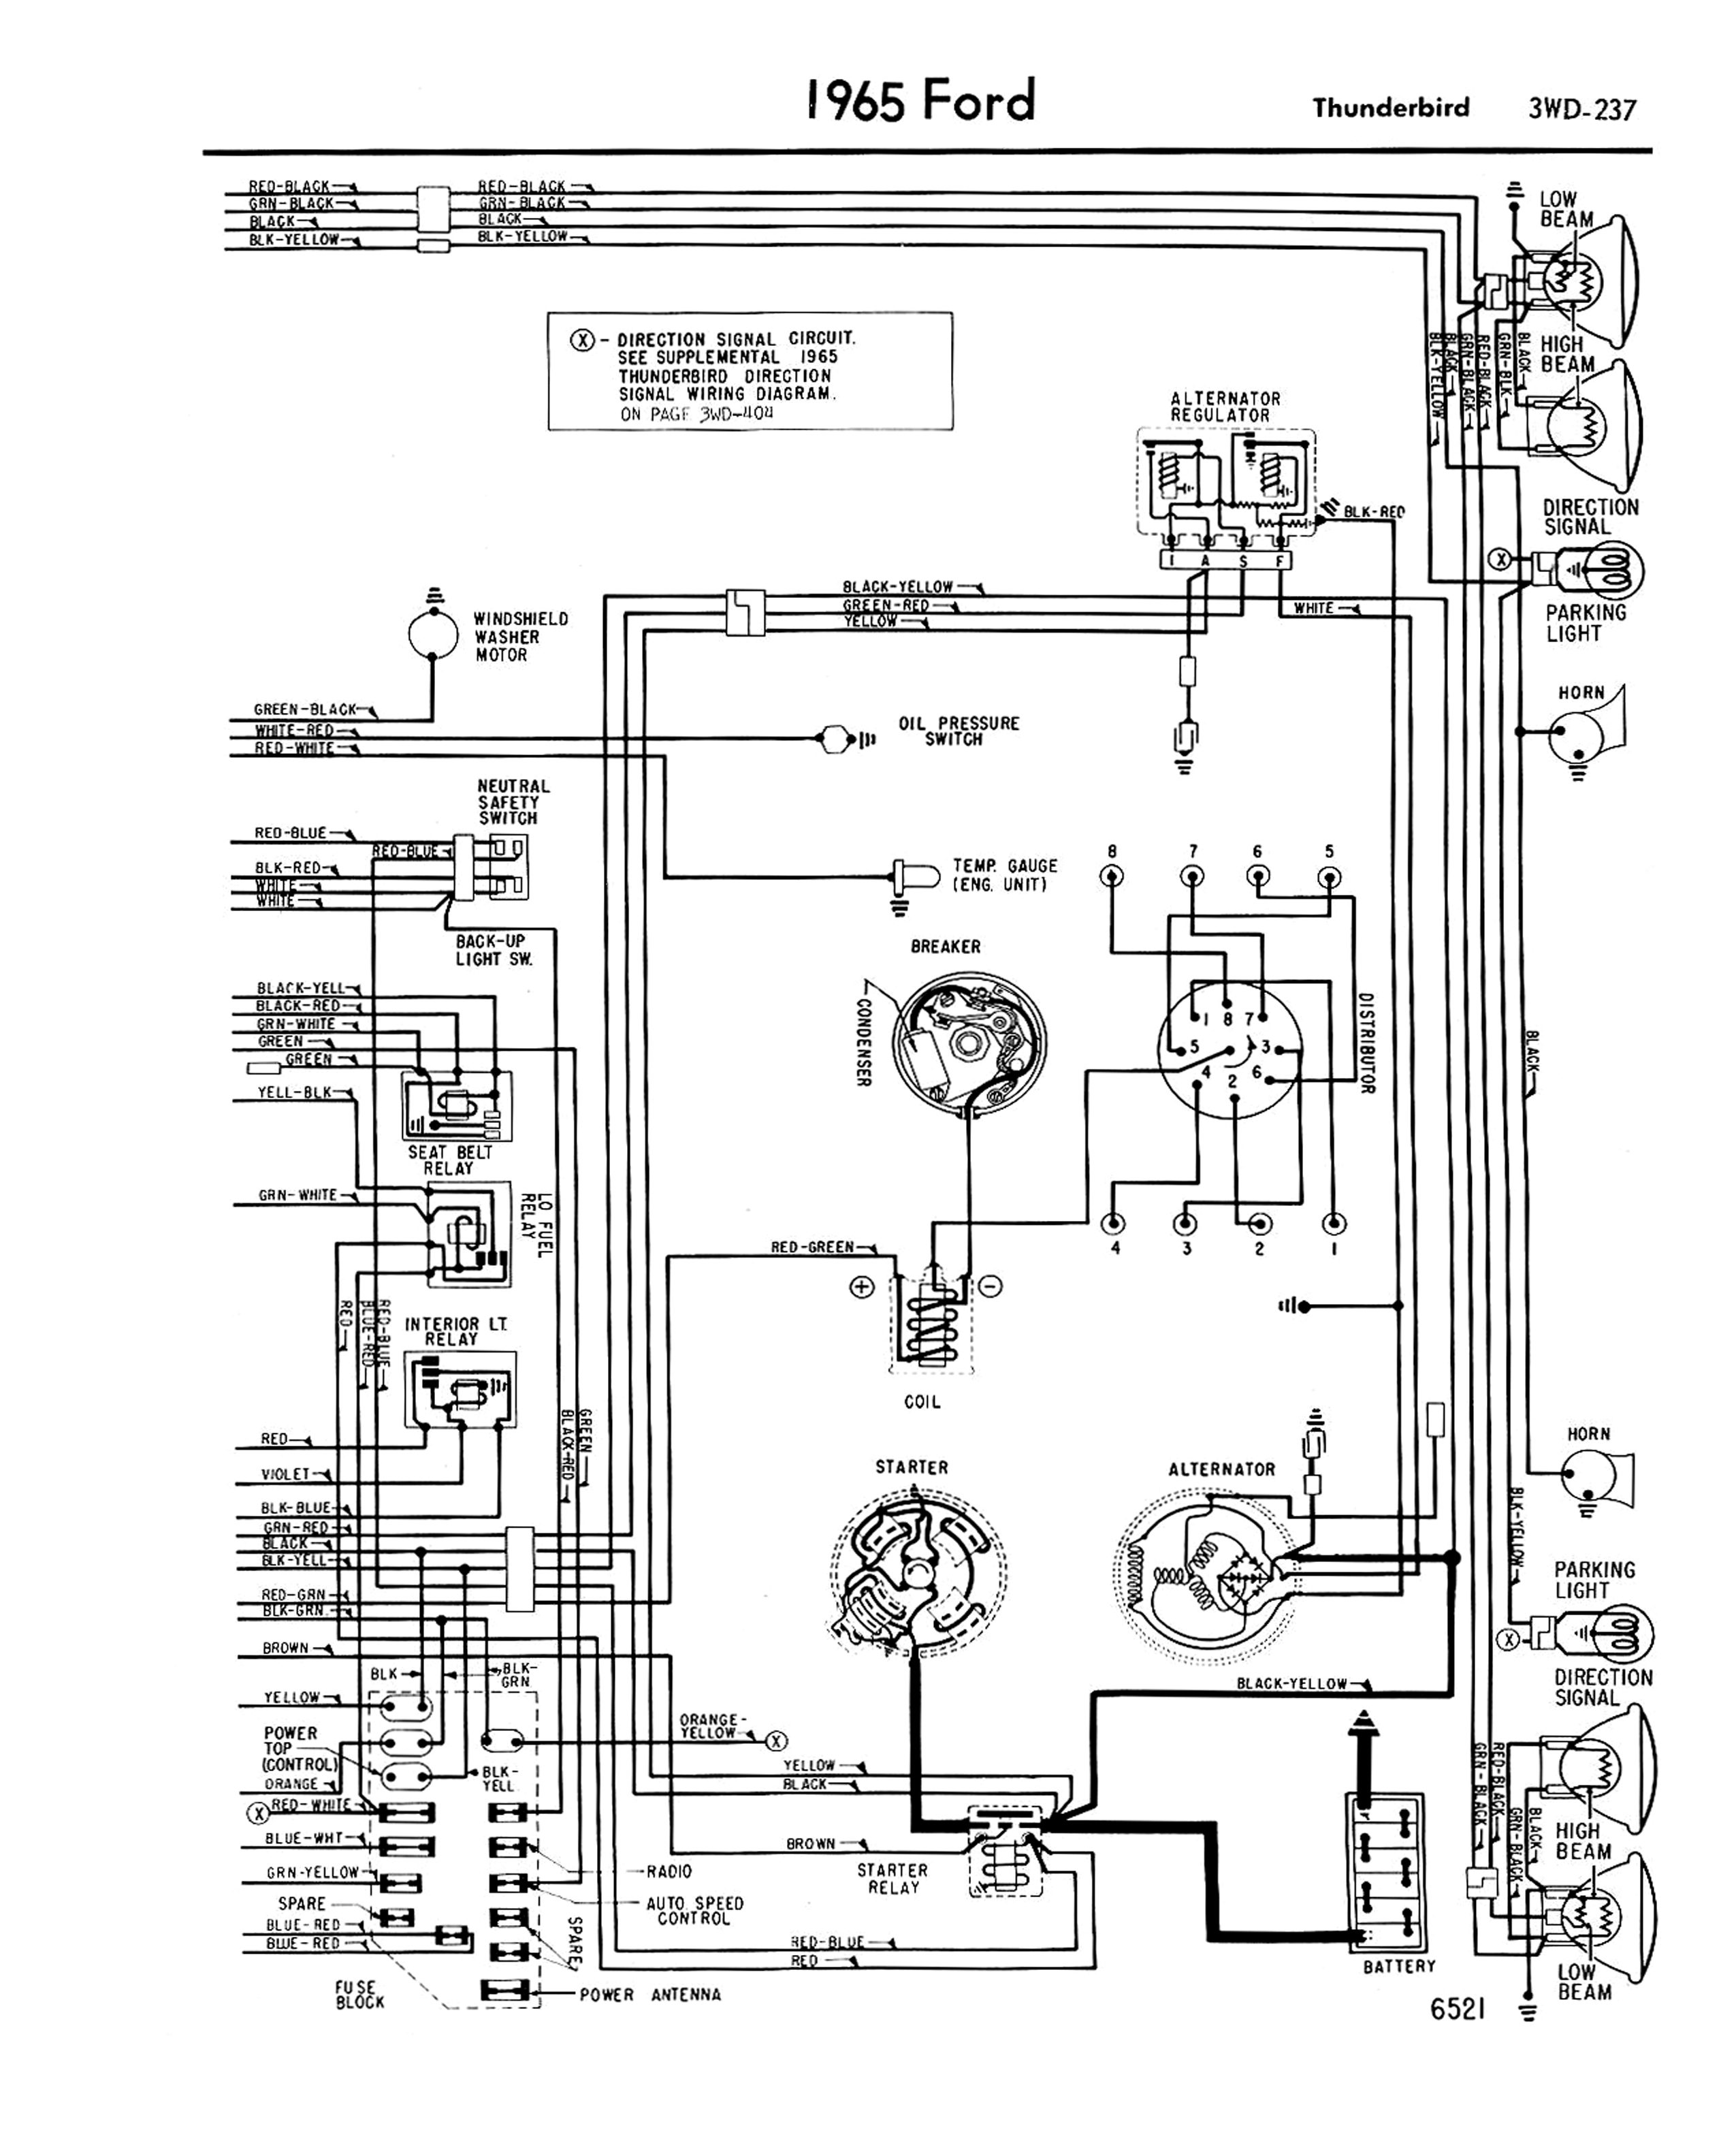 1963 Ford Thunderbird Wiring Diagram Trusted Dash Wire Harness Schematic 1997 1965 Free Download Electrical System 1956 T